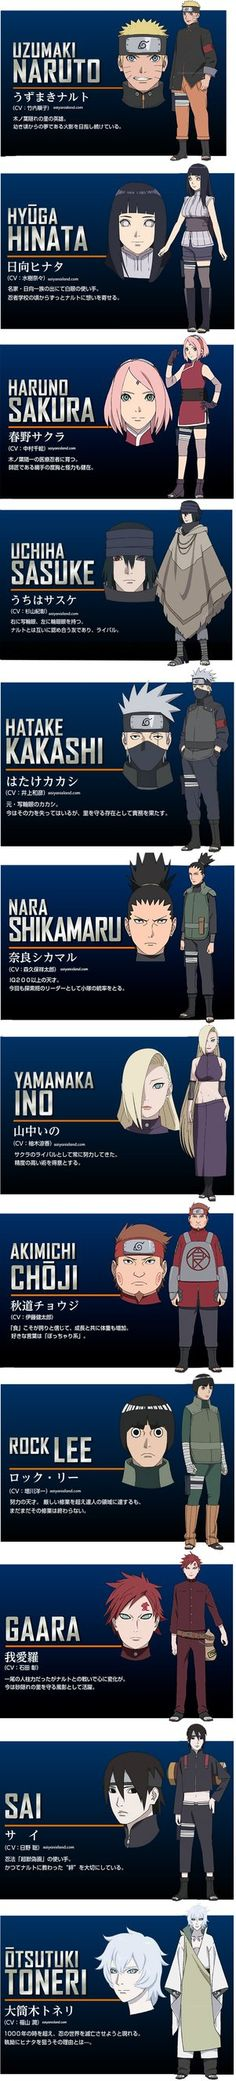 After yesterday's epicThe Last: Naruto the Movie Trailer 4, the thirst for Naruto's 2014 big screen debut is greater than ever! Today, enjoy 12 full color designs for Naruto and o...